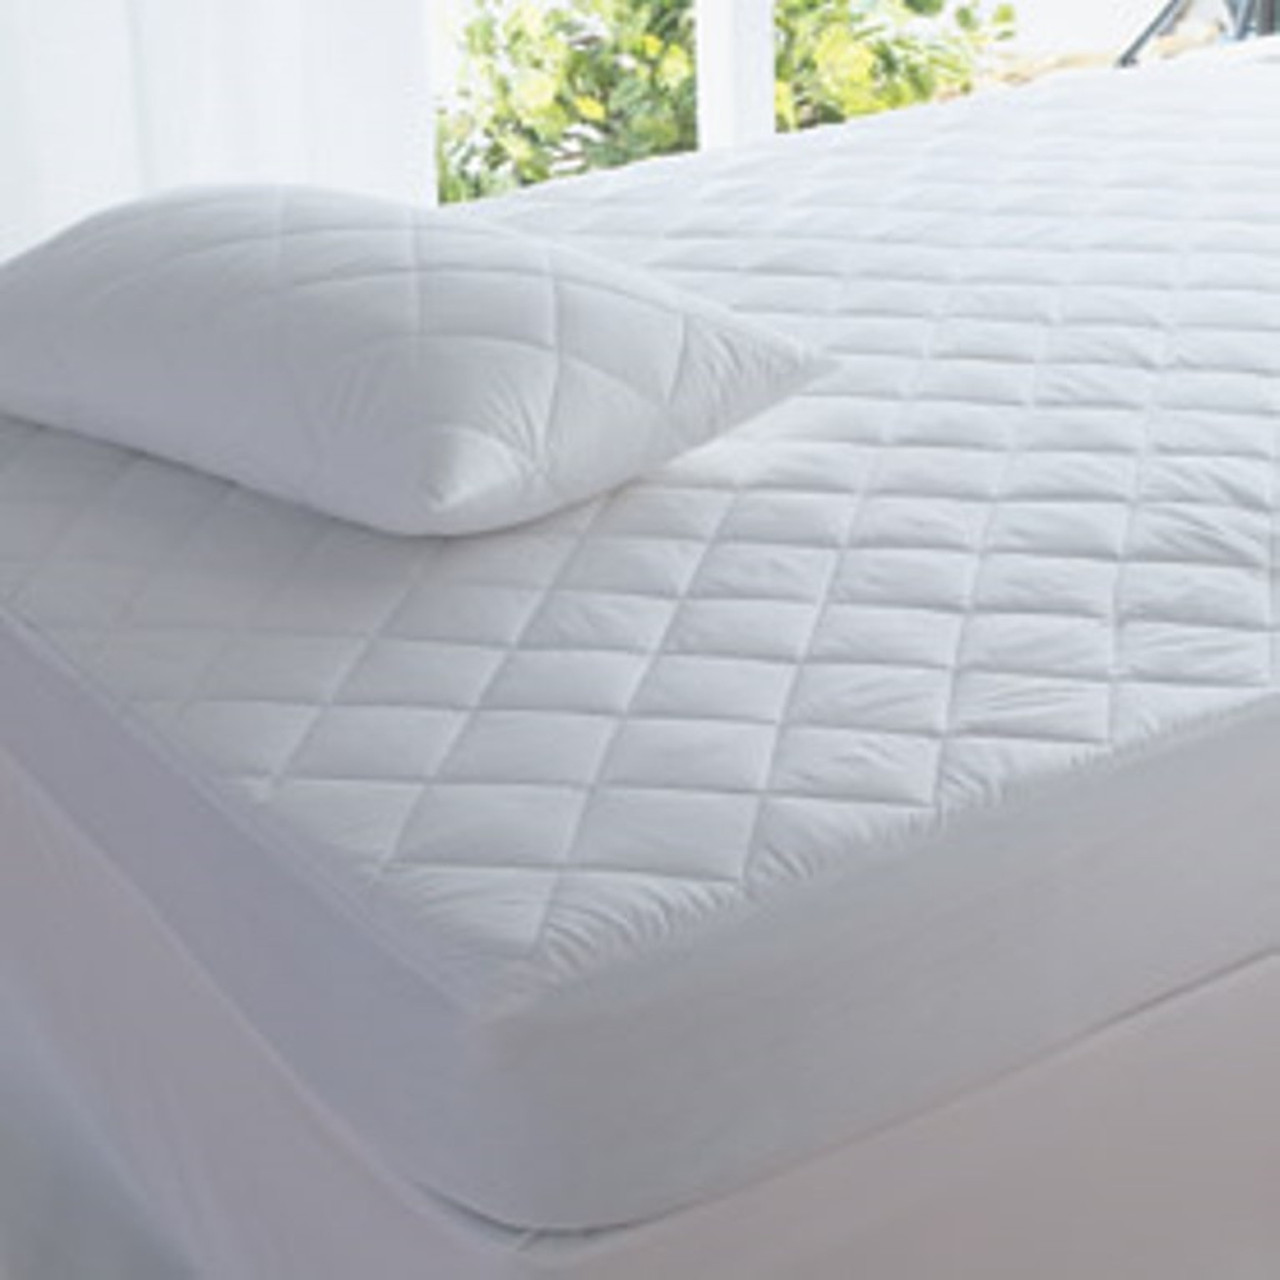 fitted mattress protector. Super King Size Fitted Mattress Protector Quilted - 100% Cotton Healthguard Treated I